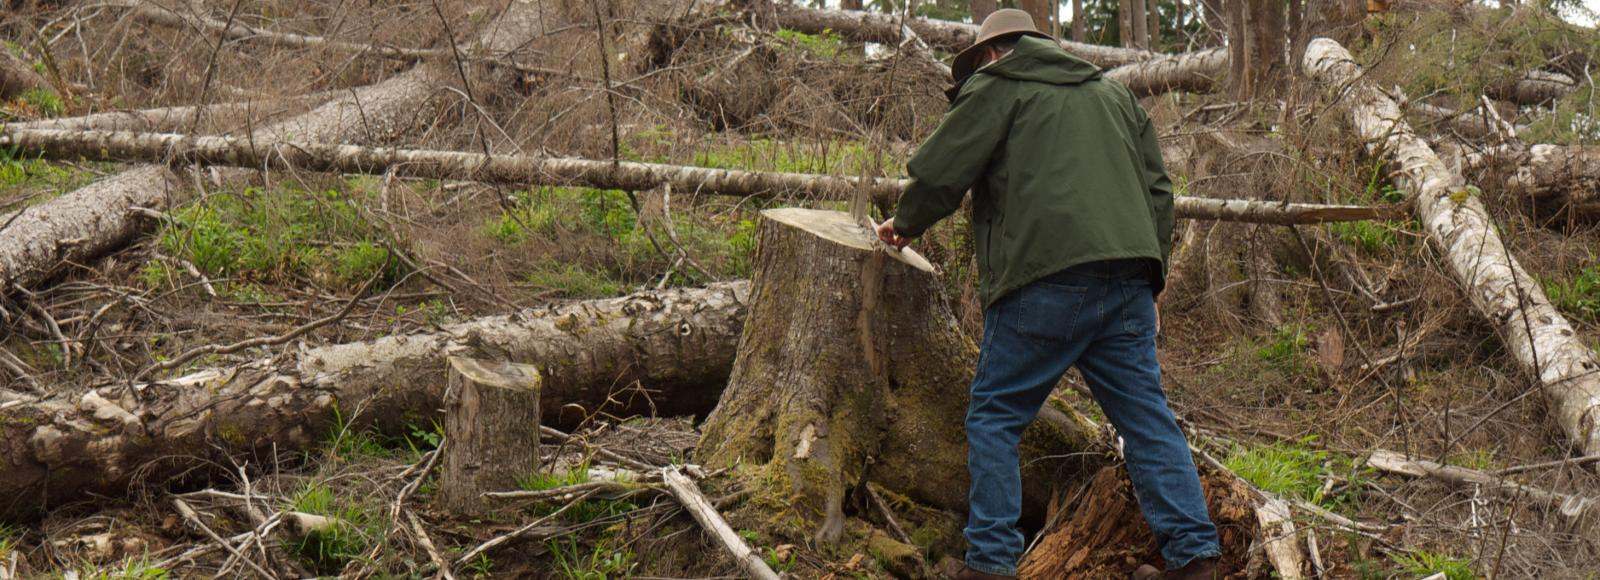 A man in a green coat and tan felt hat stands next to a tall stump and uses his finger to count the tree rings amidst downed logs